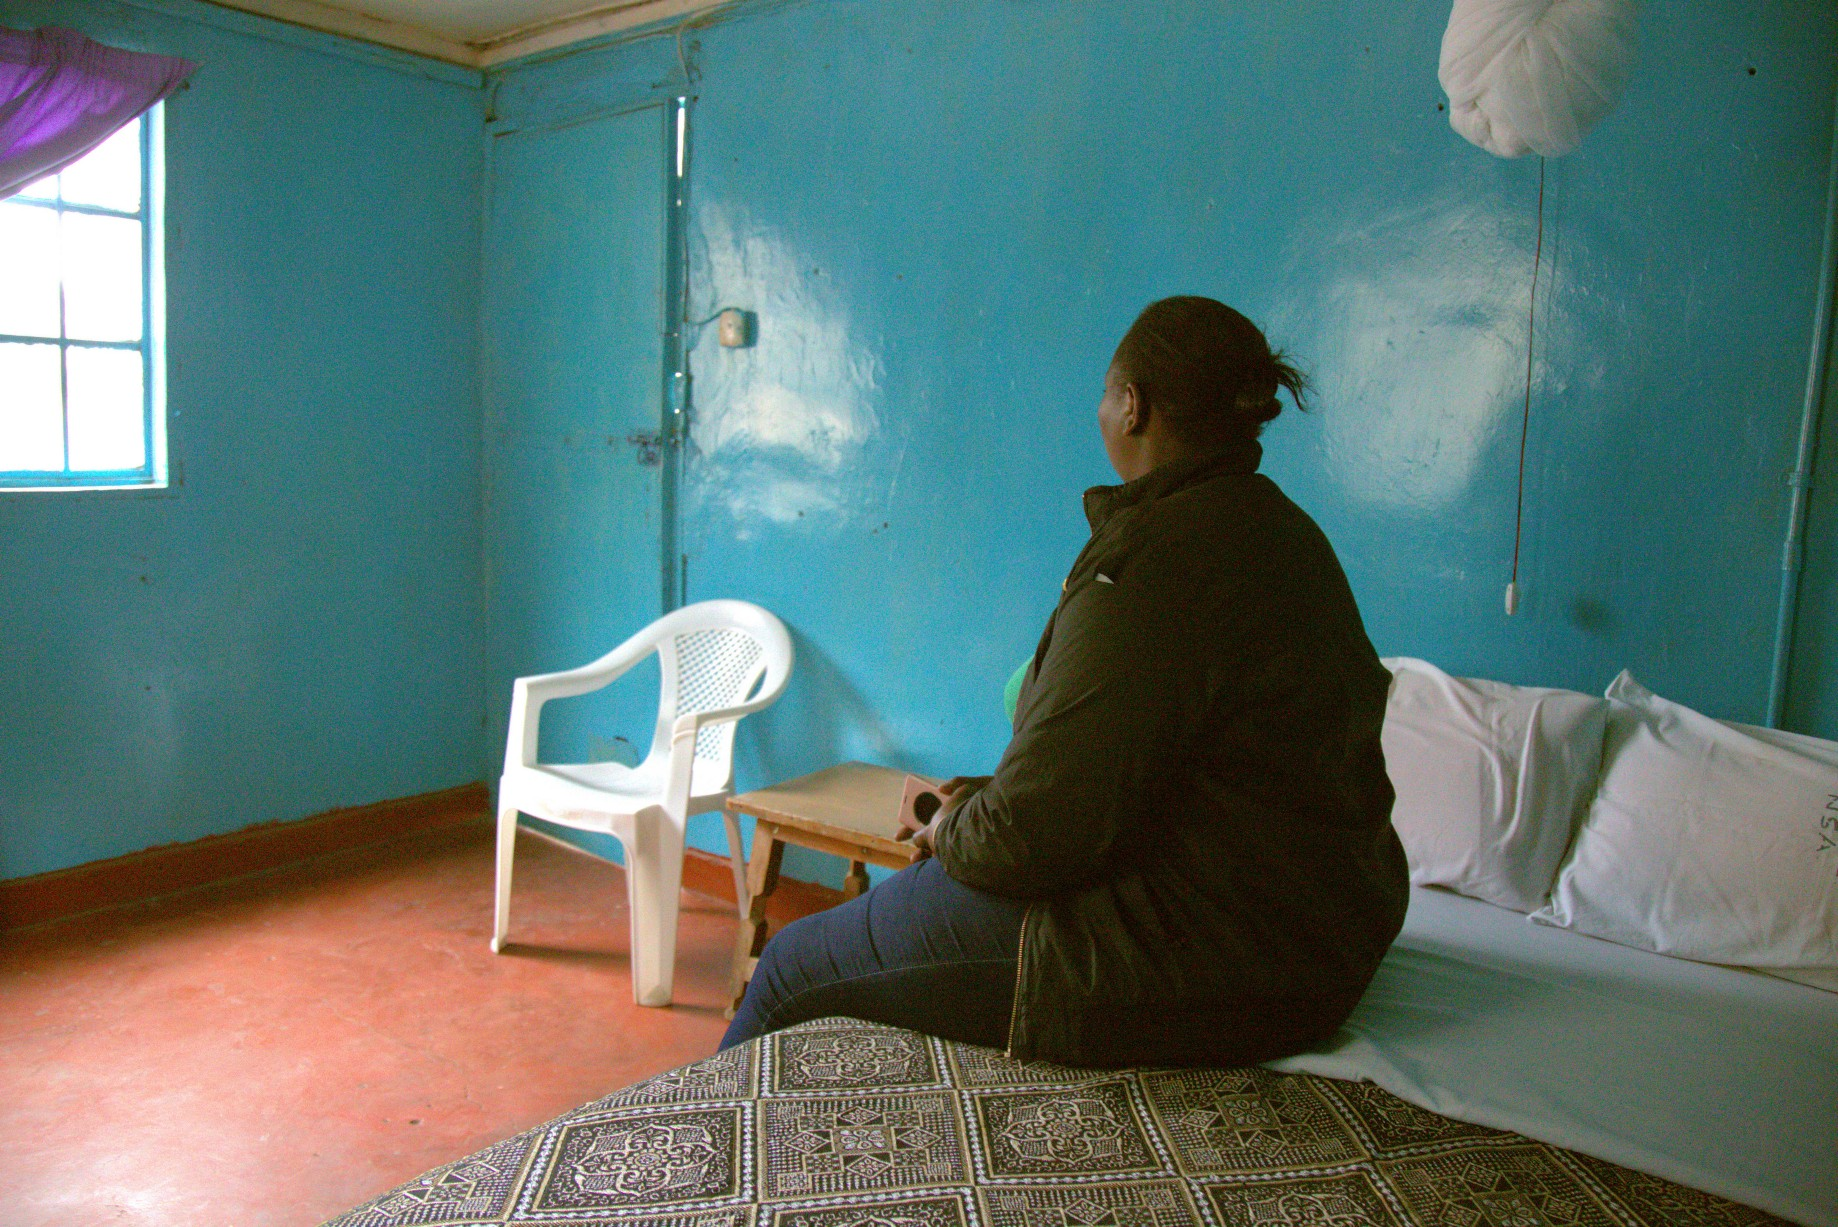 Harmful Home Office guidelines state women trafficked from Nigeria